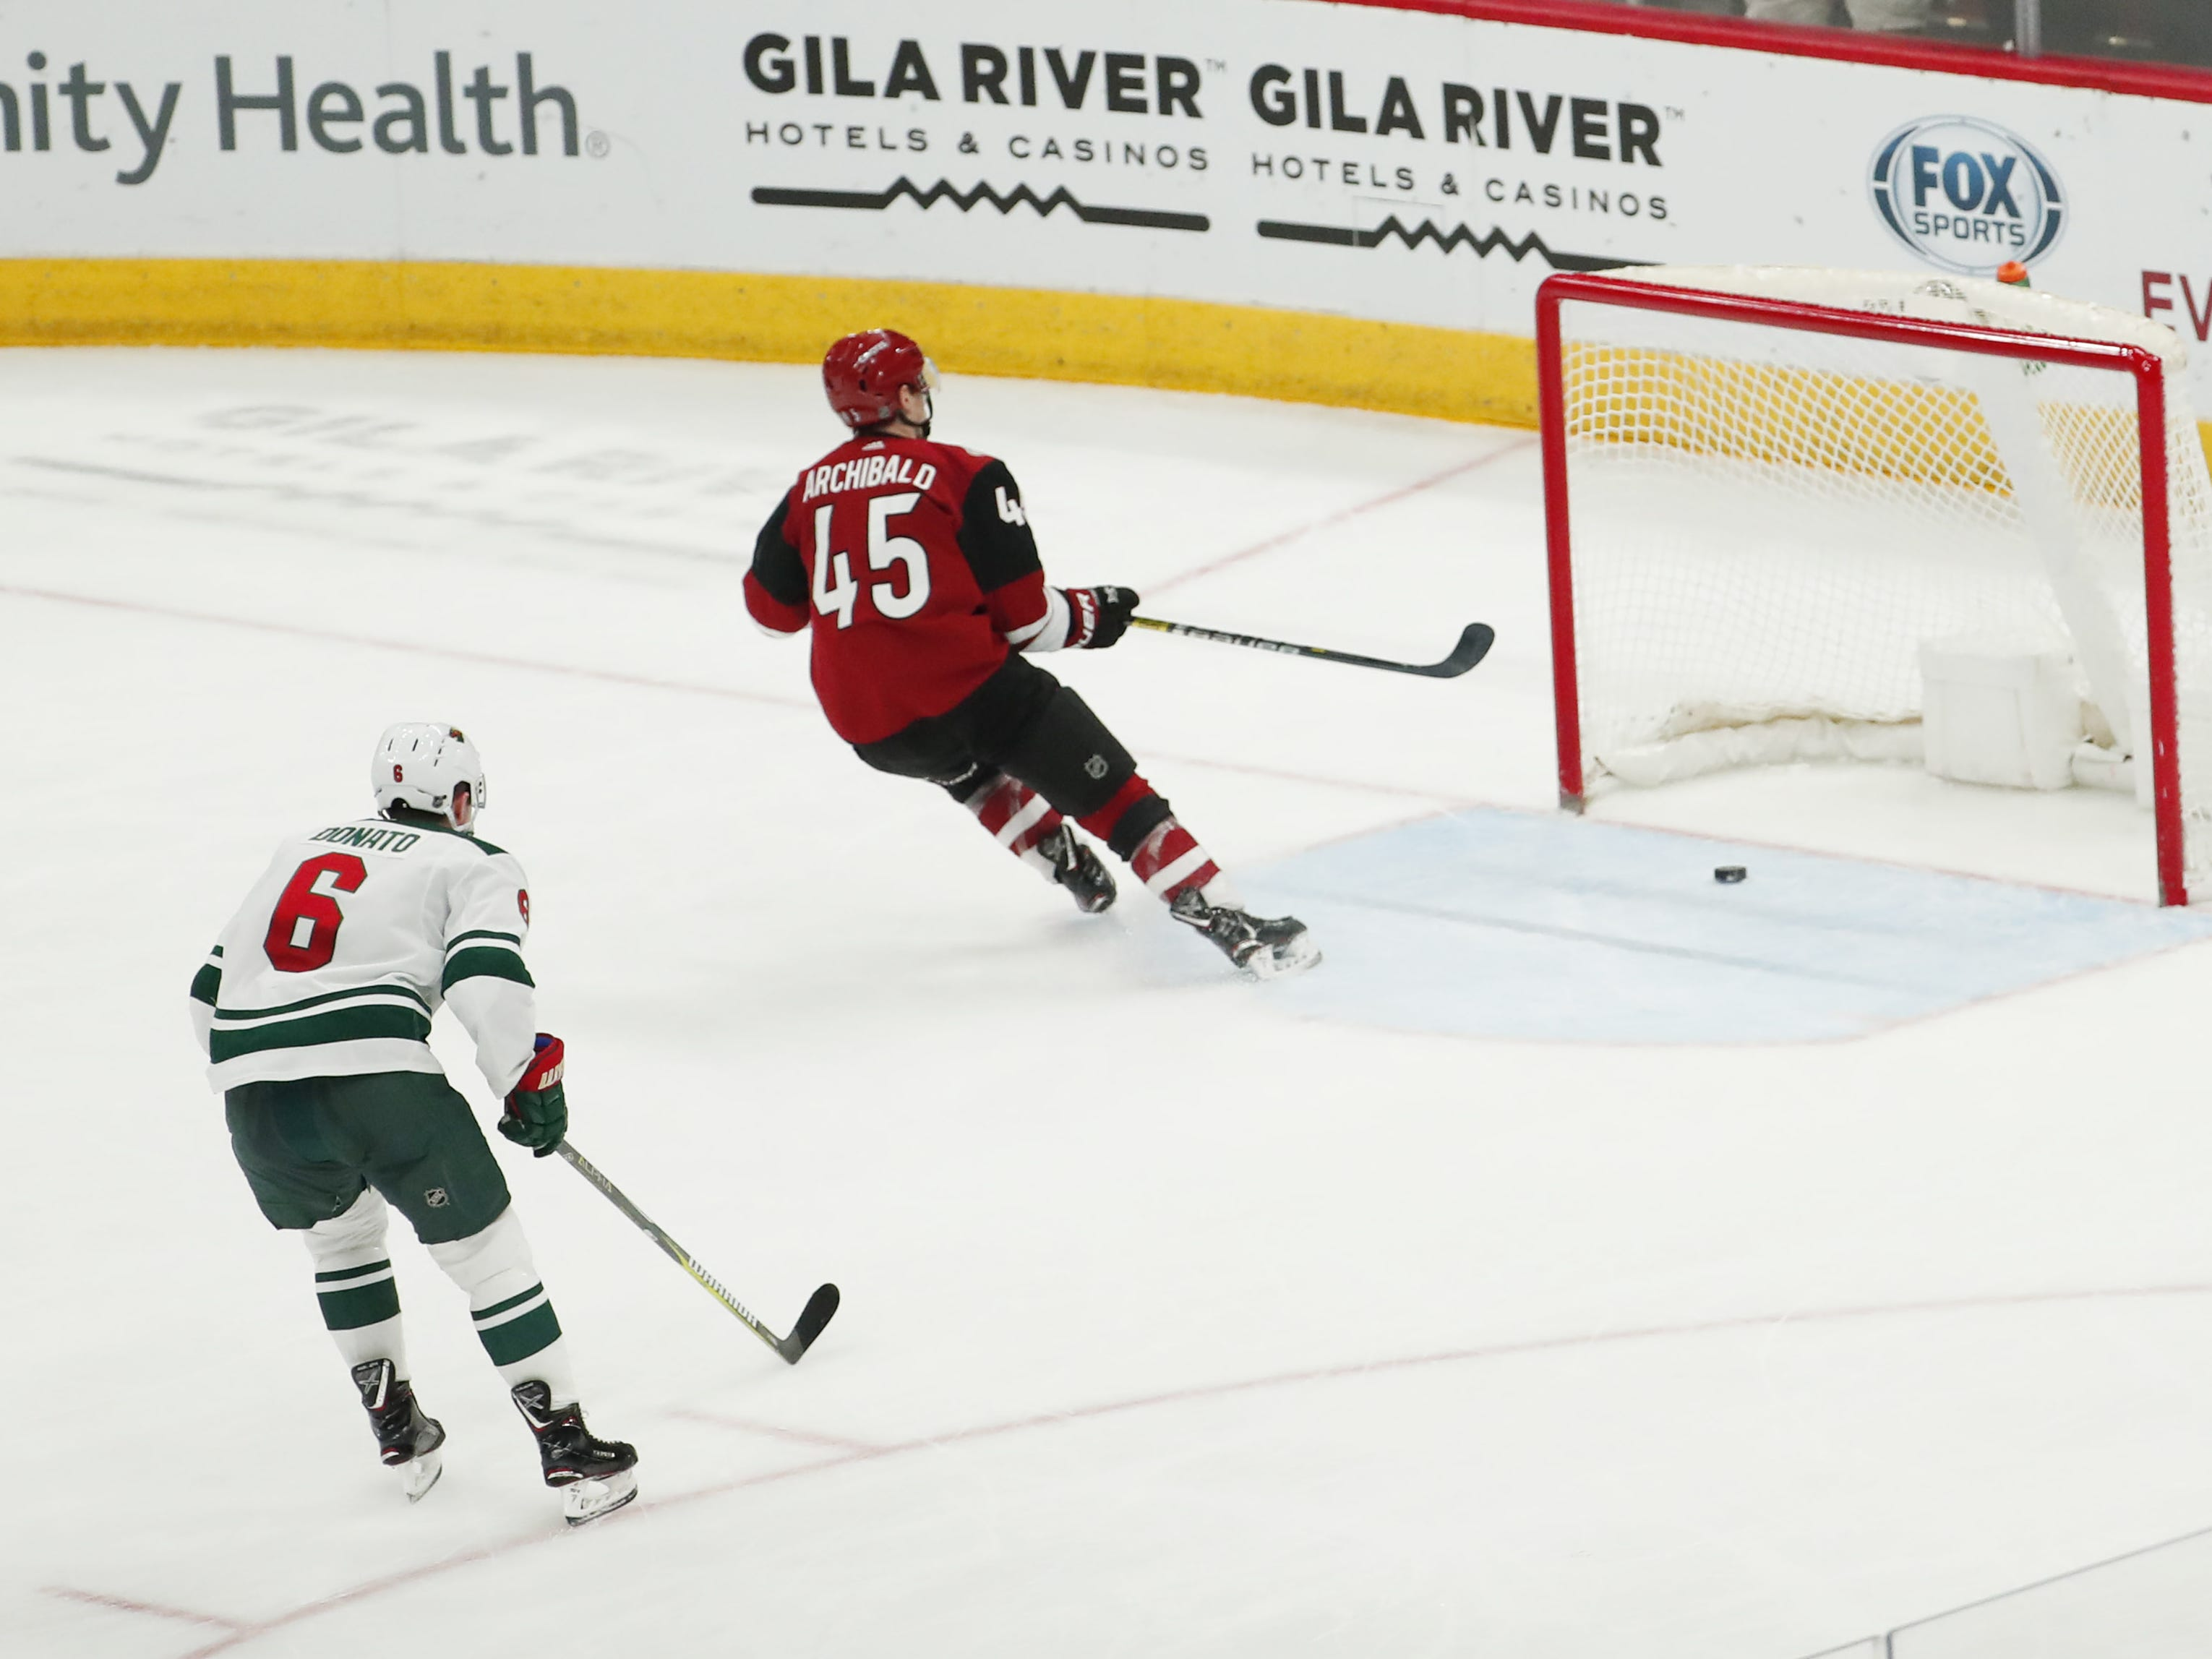 Arizona Coyotes right wing Josh Archibald (45) scores an empty-net goal against the Minnesota Wild during the third period in Glendale March 31, 2019.